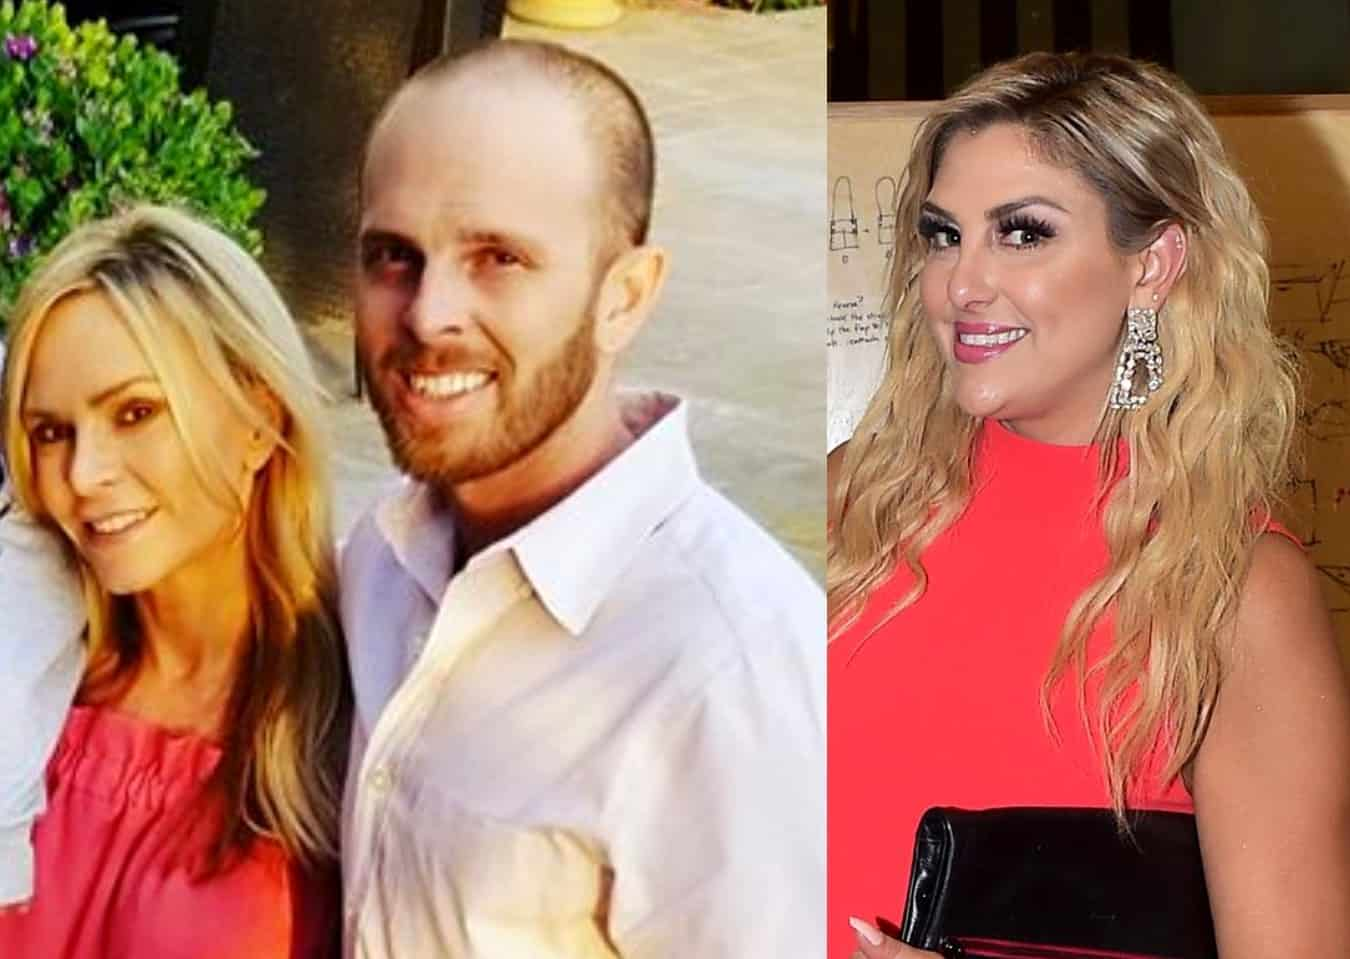 'RHOC' Tamra Judge's Son Ryan Vieth Blasts Gina After She Defends Him and Denies They've Ever 'Hung Out,' Read His Shocking Deleted Posts